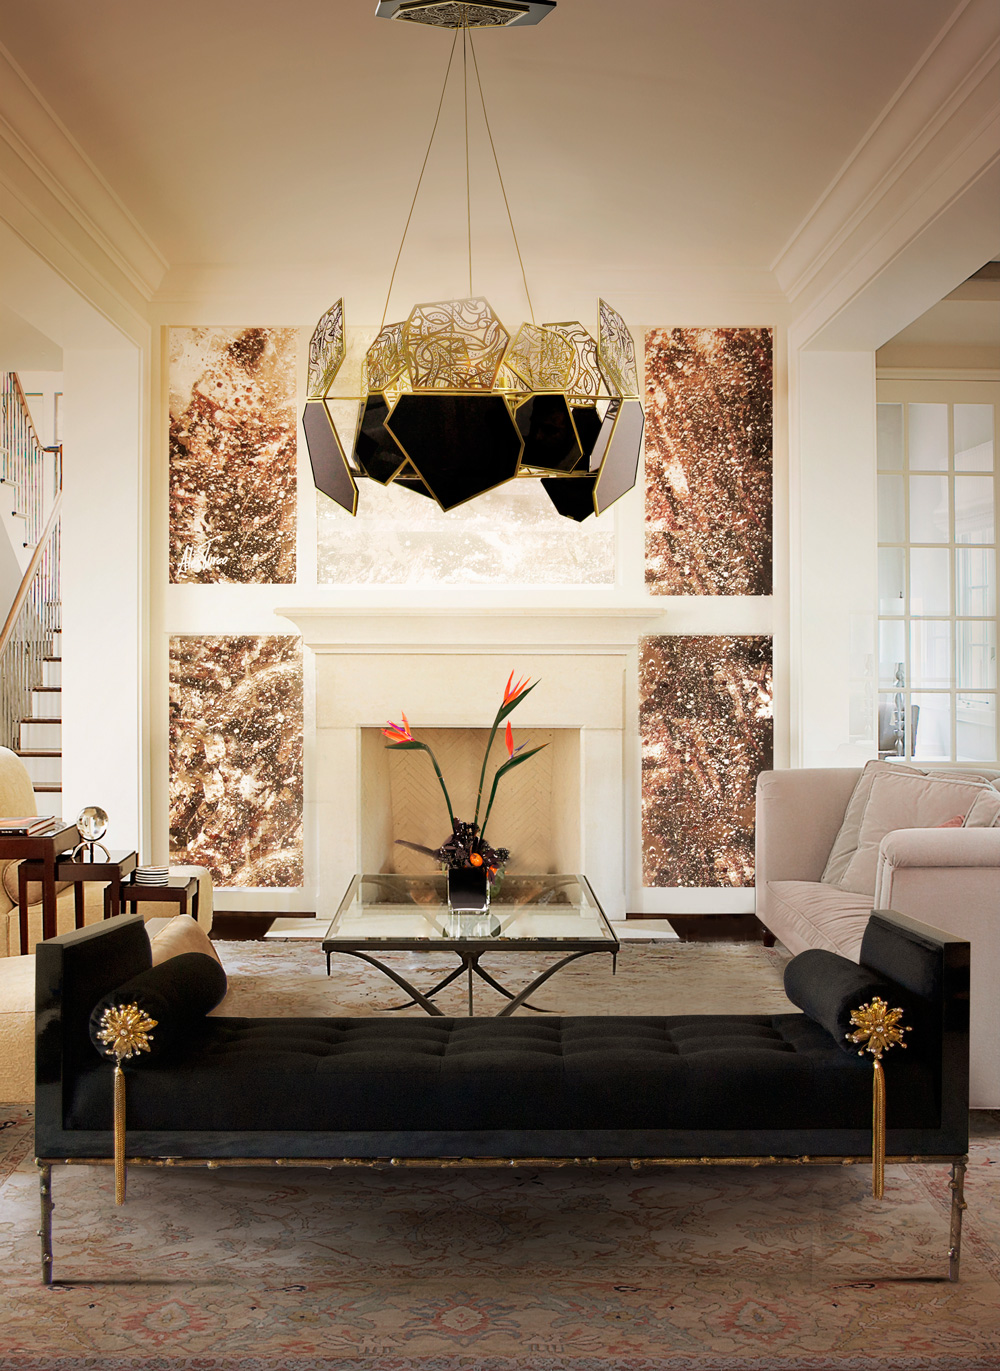 Glamour Interior Style Koket Textiles  TOP 10 MODERN GLAMOUR STYLE GUIDELINES ambiente prive